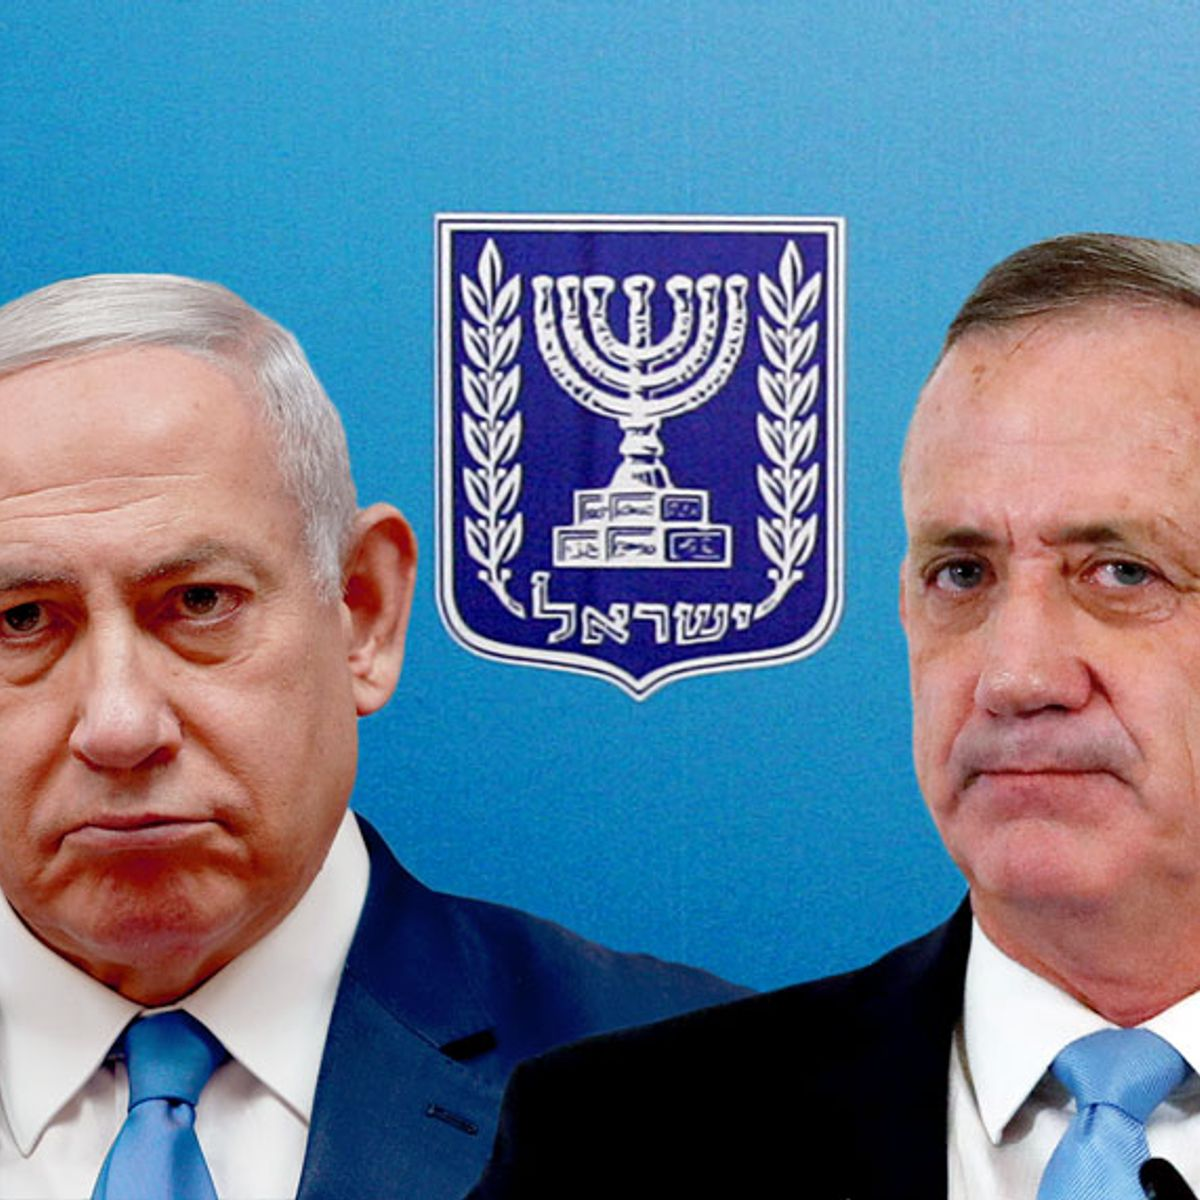 Netanyahu can't form a governing coalition in Israel: Now it's Benny Gantz's turn